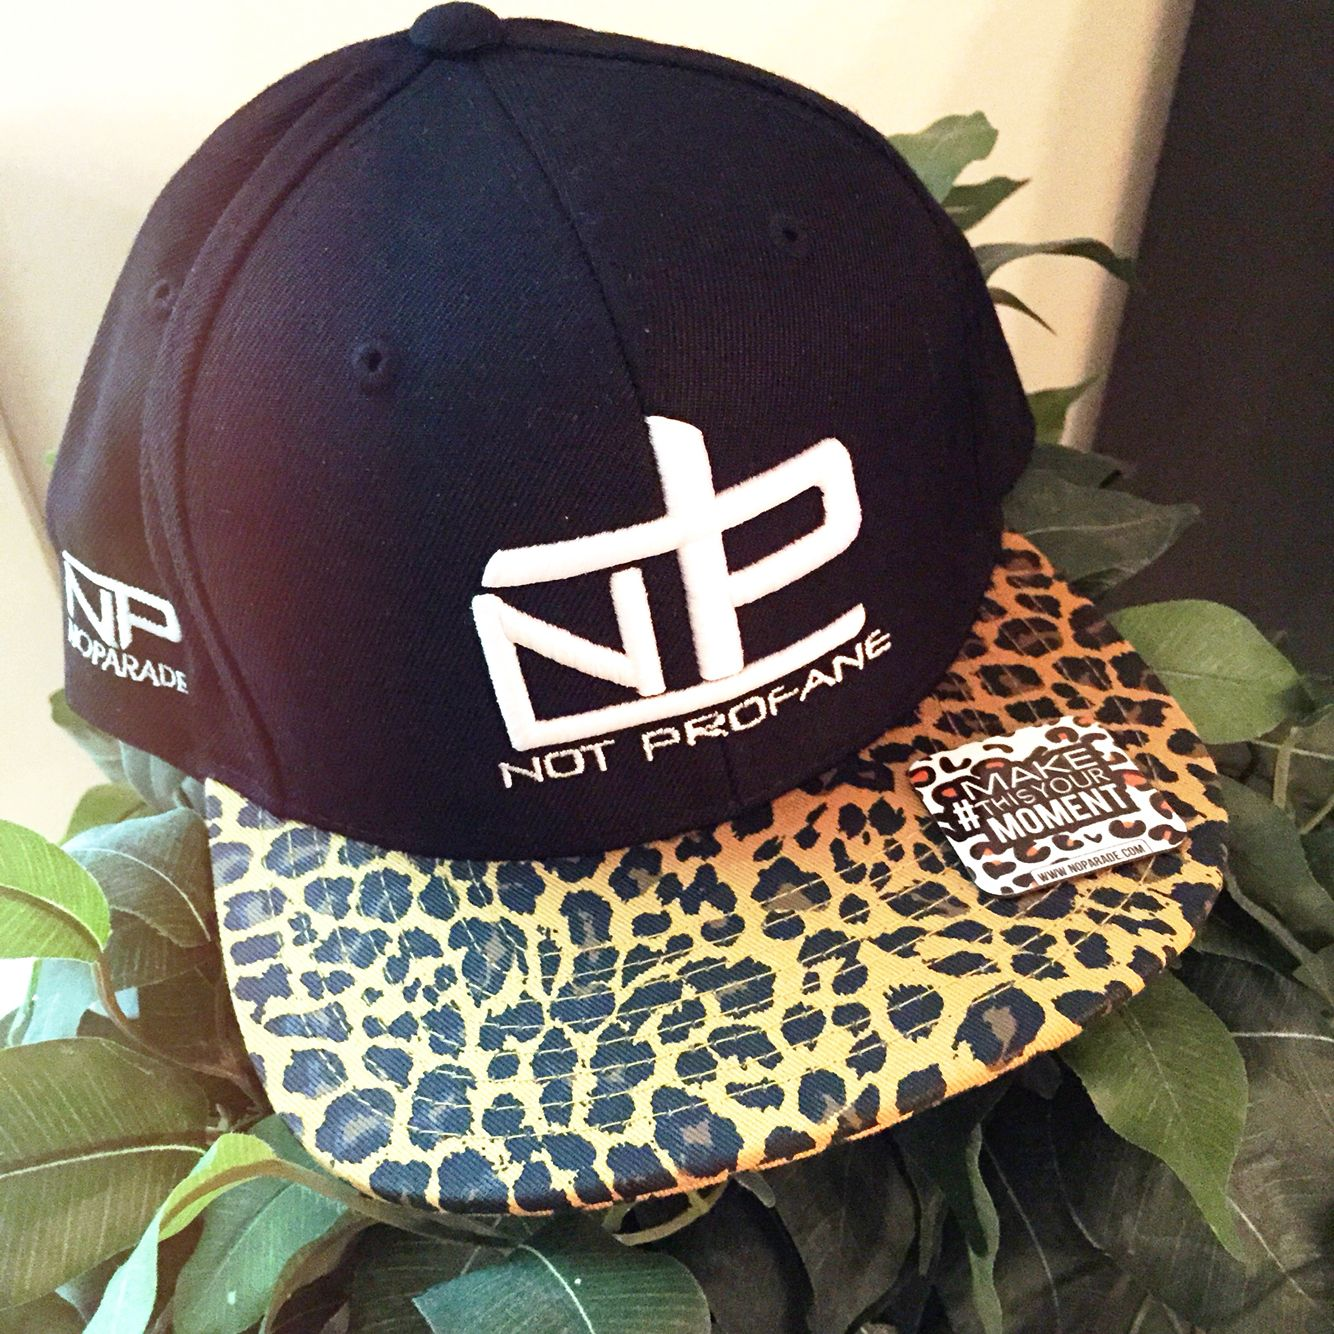 4e35689d6d5 Snapback Cap by  noparade  NotProfane  Caps on our luxury store ...